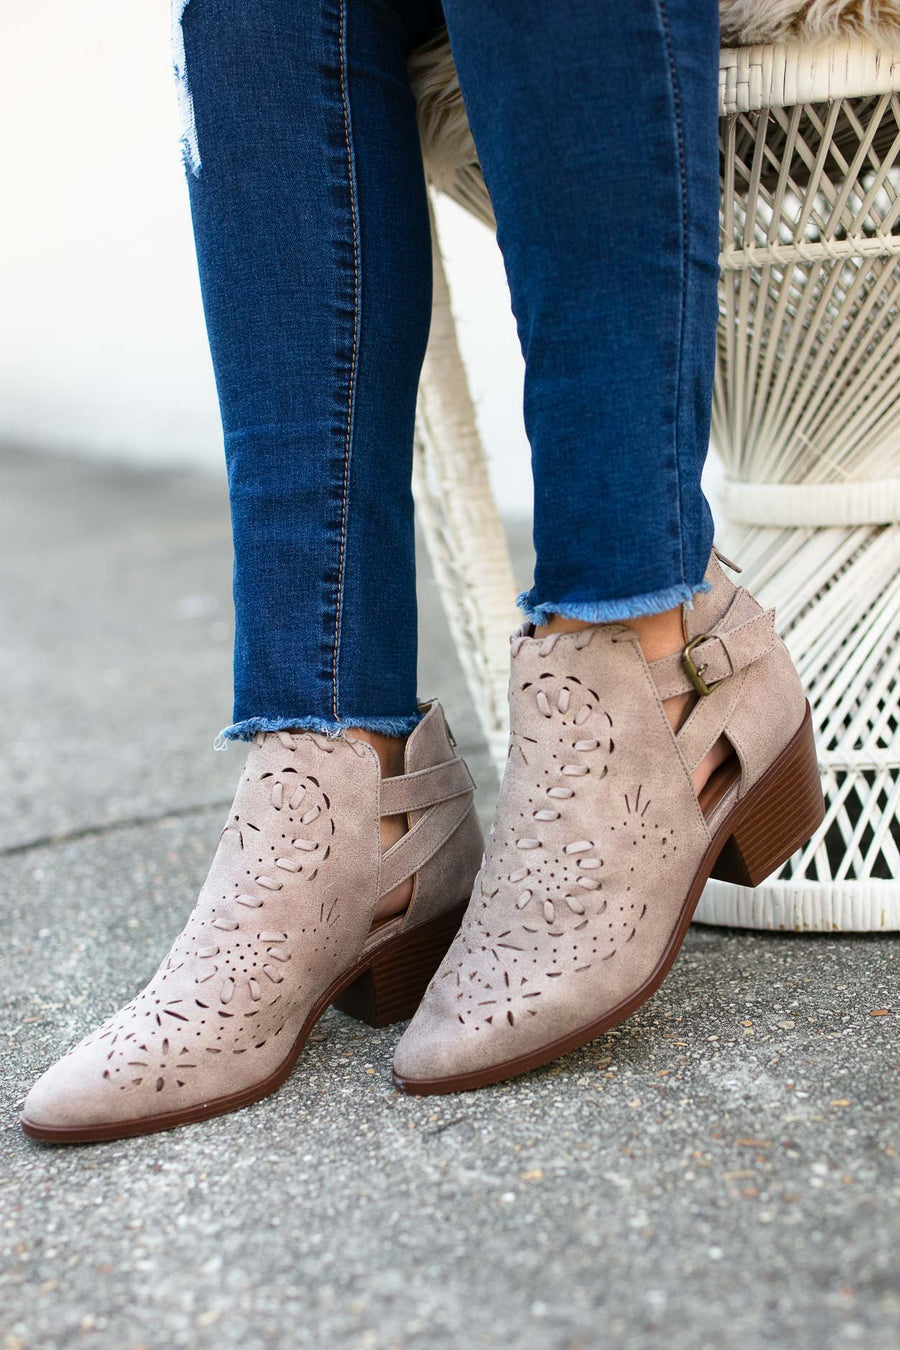 Shoes This Love I Found Grey Cut Out Detail Booties - Lotus Boutique